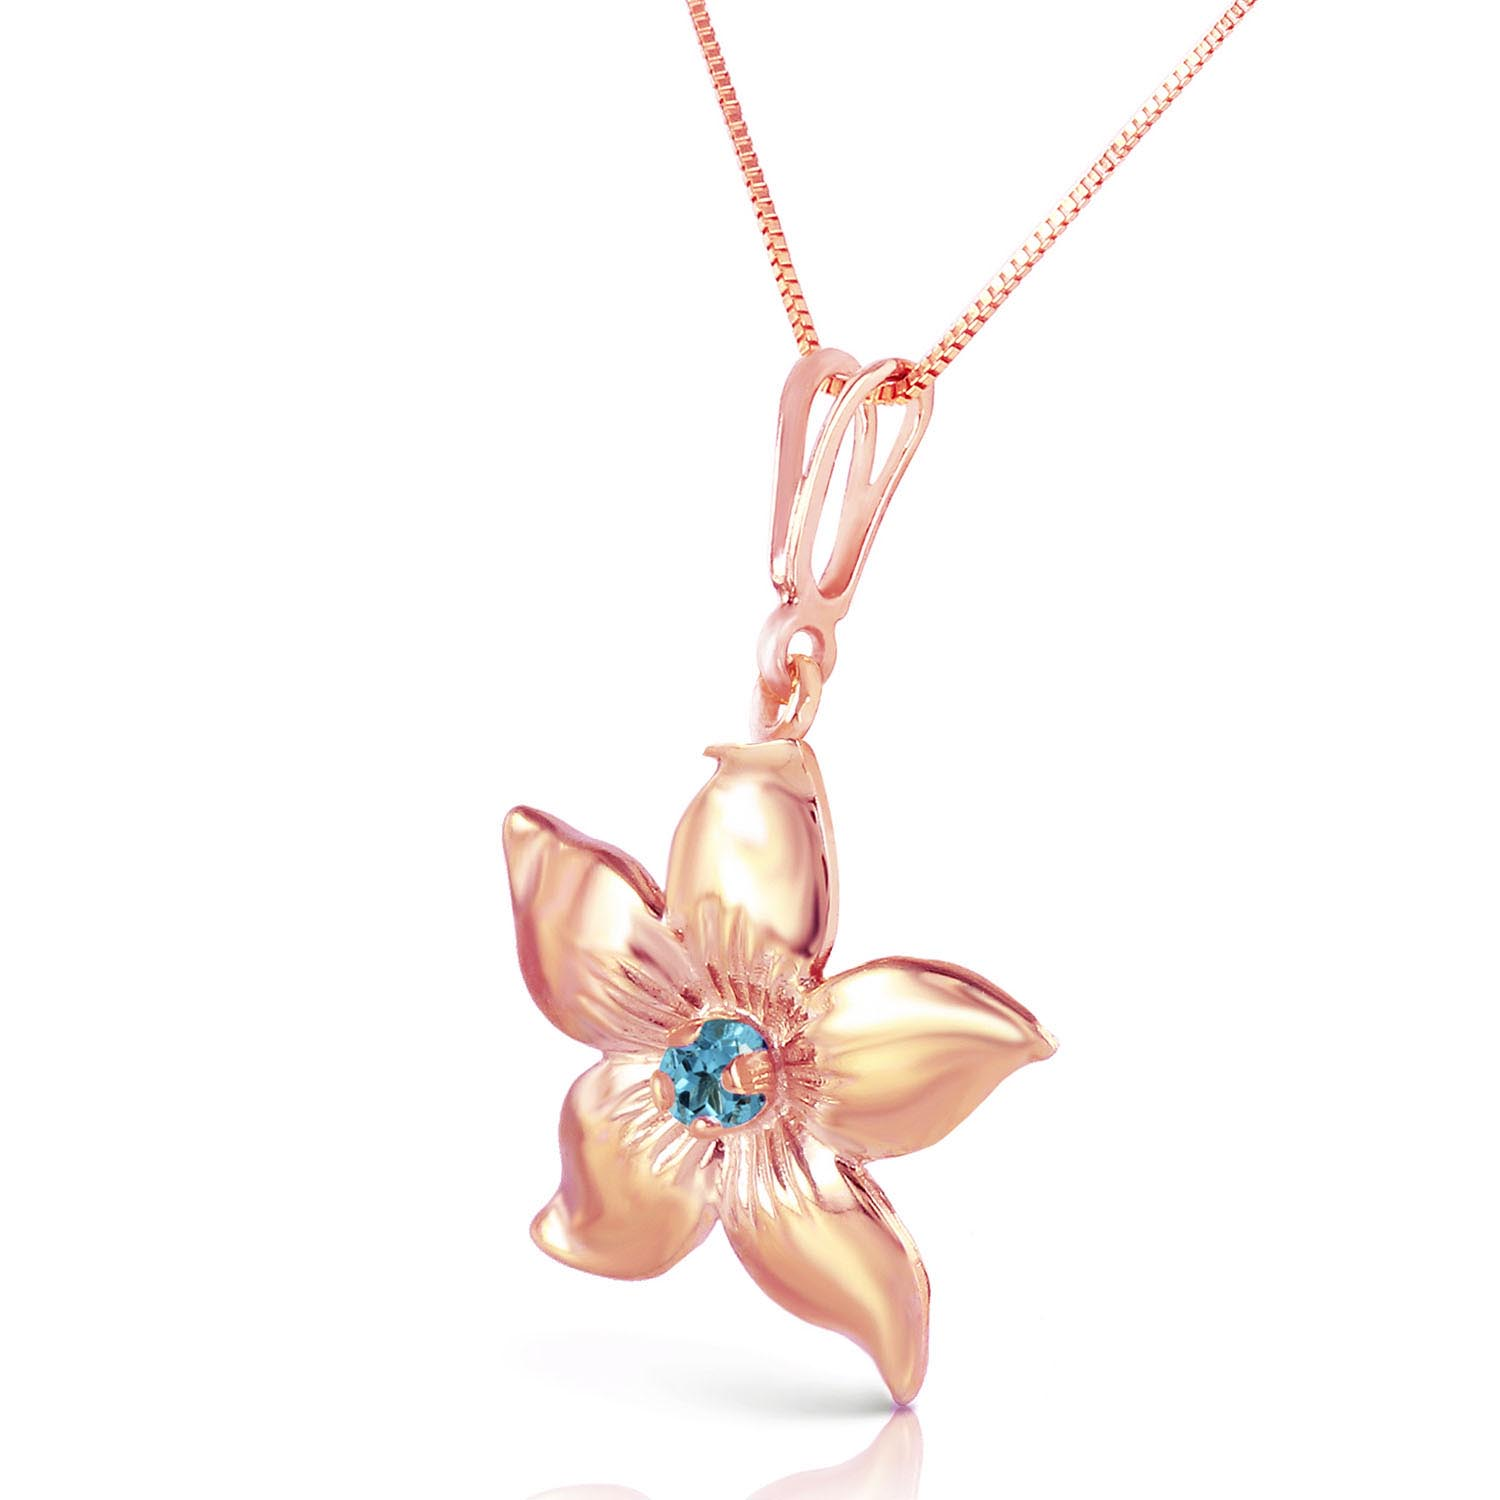 Blue Topaz Flower Star Pendant Necklace 0.1ct in 9ct Rose Gold